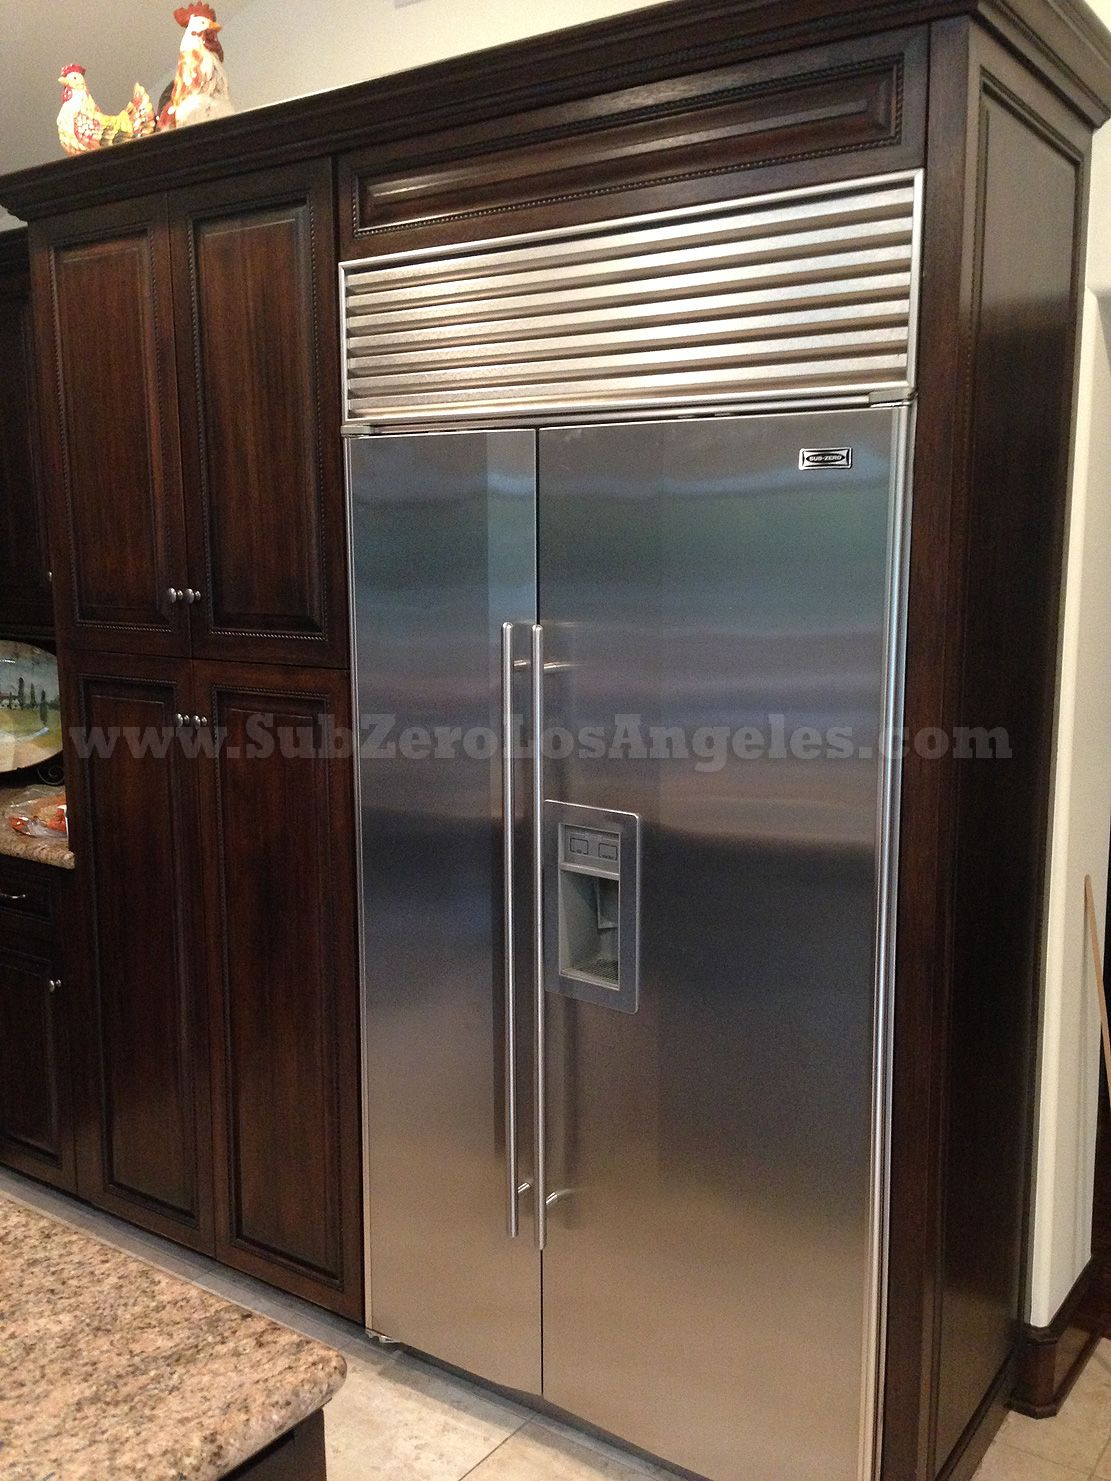 sub zero refrigerator pricing sub zero refrigerator problems sub rh pinterest com Sub-Zero and Scorpion sub zero 680 service manual